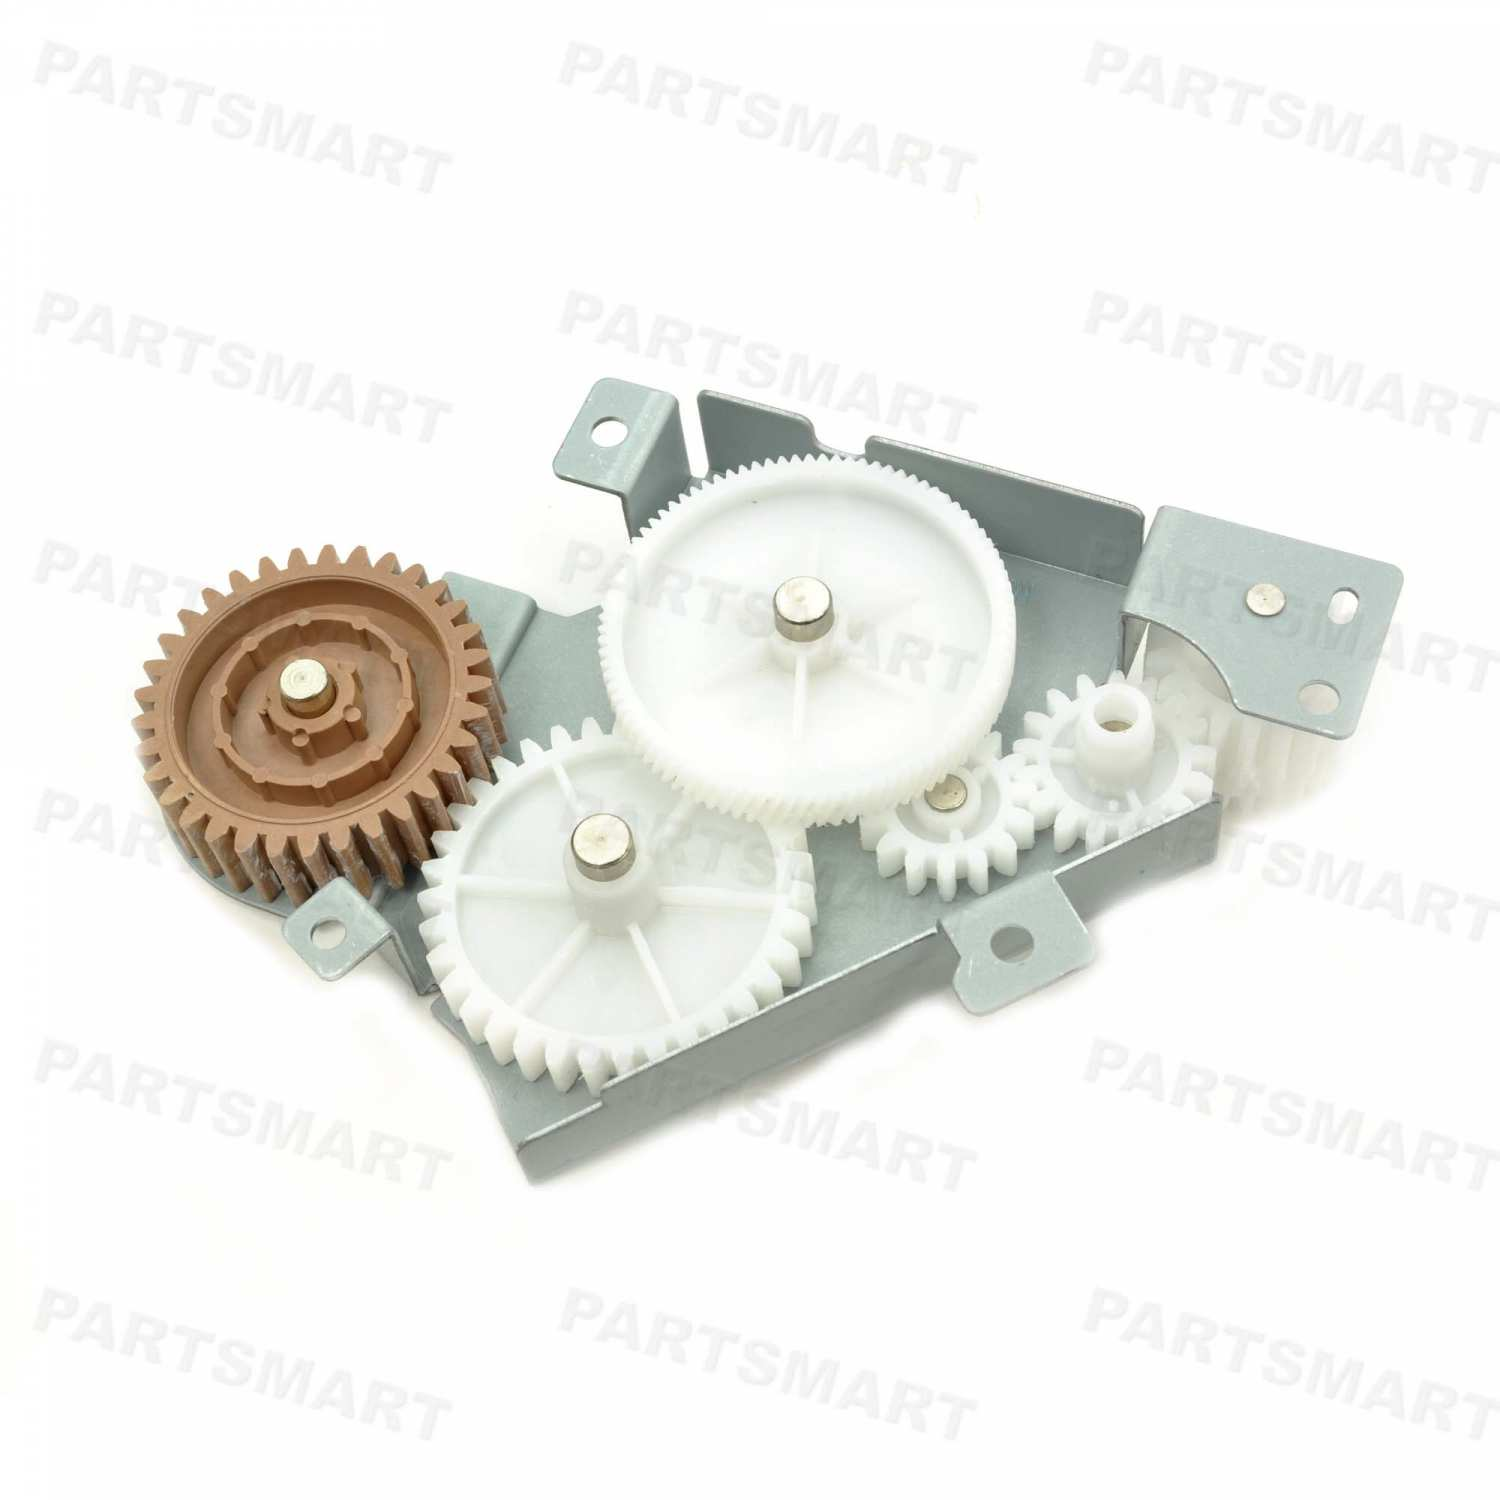 RC2-2432-000 Side Plate Fuser Drive for HP LaserJet P4014